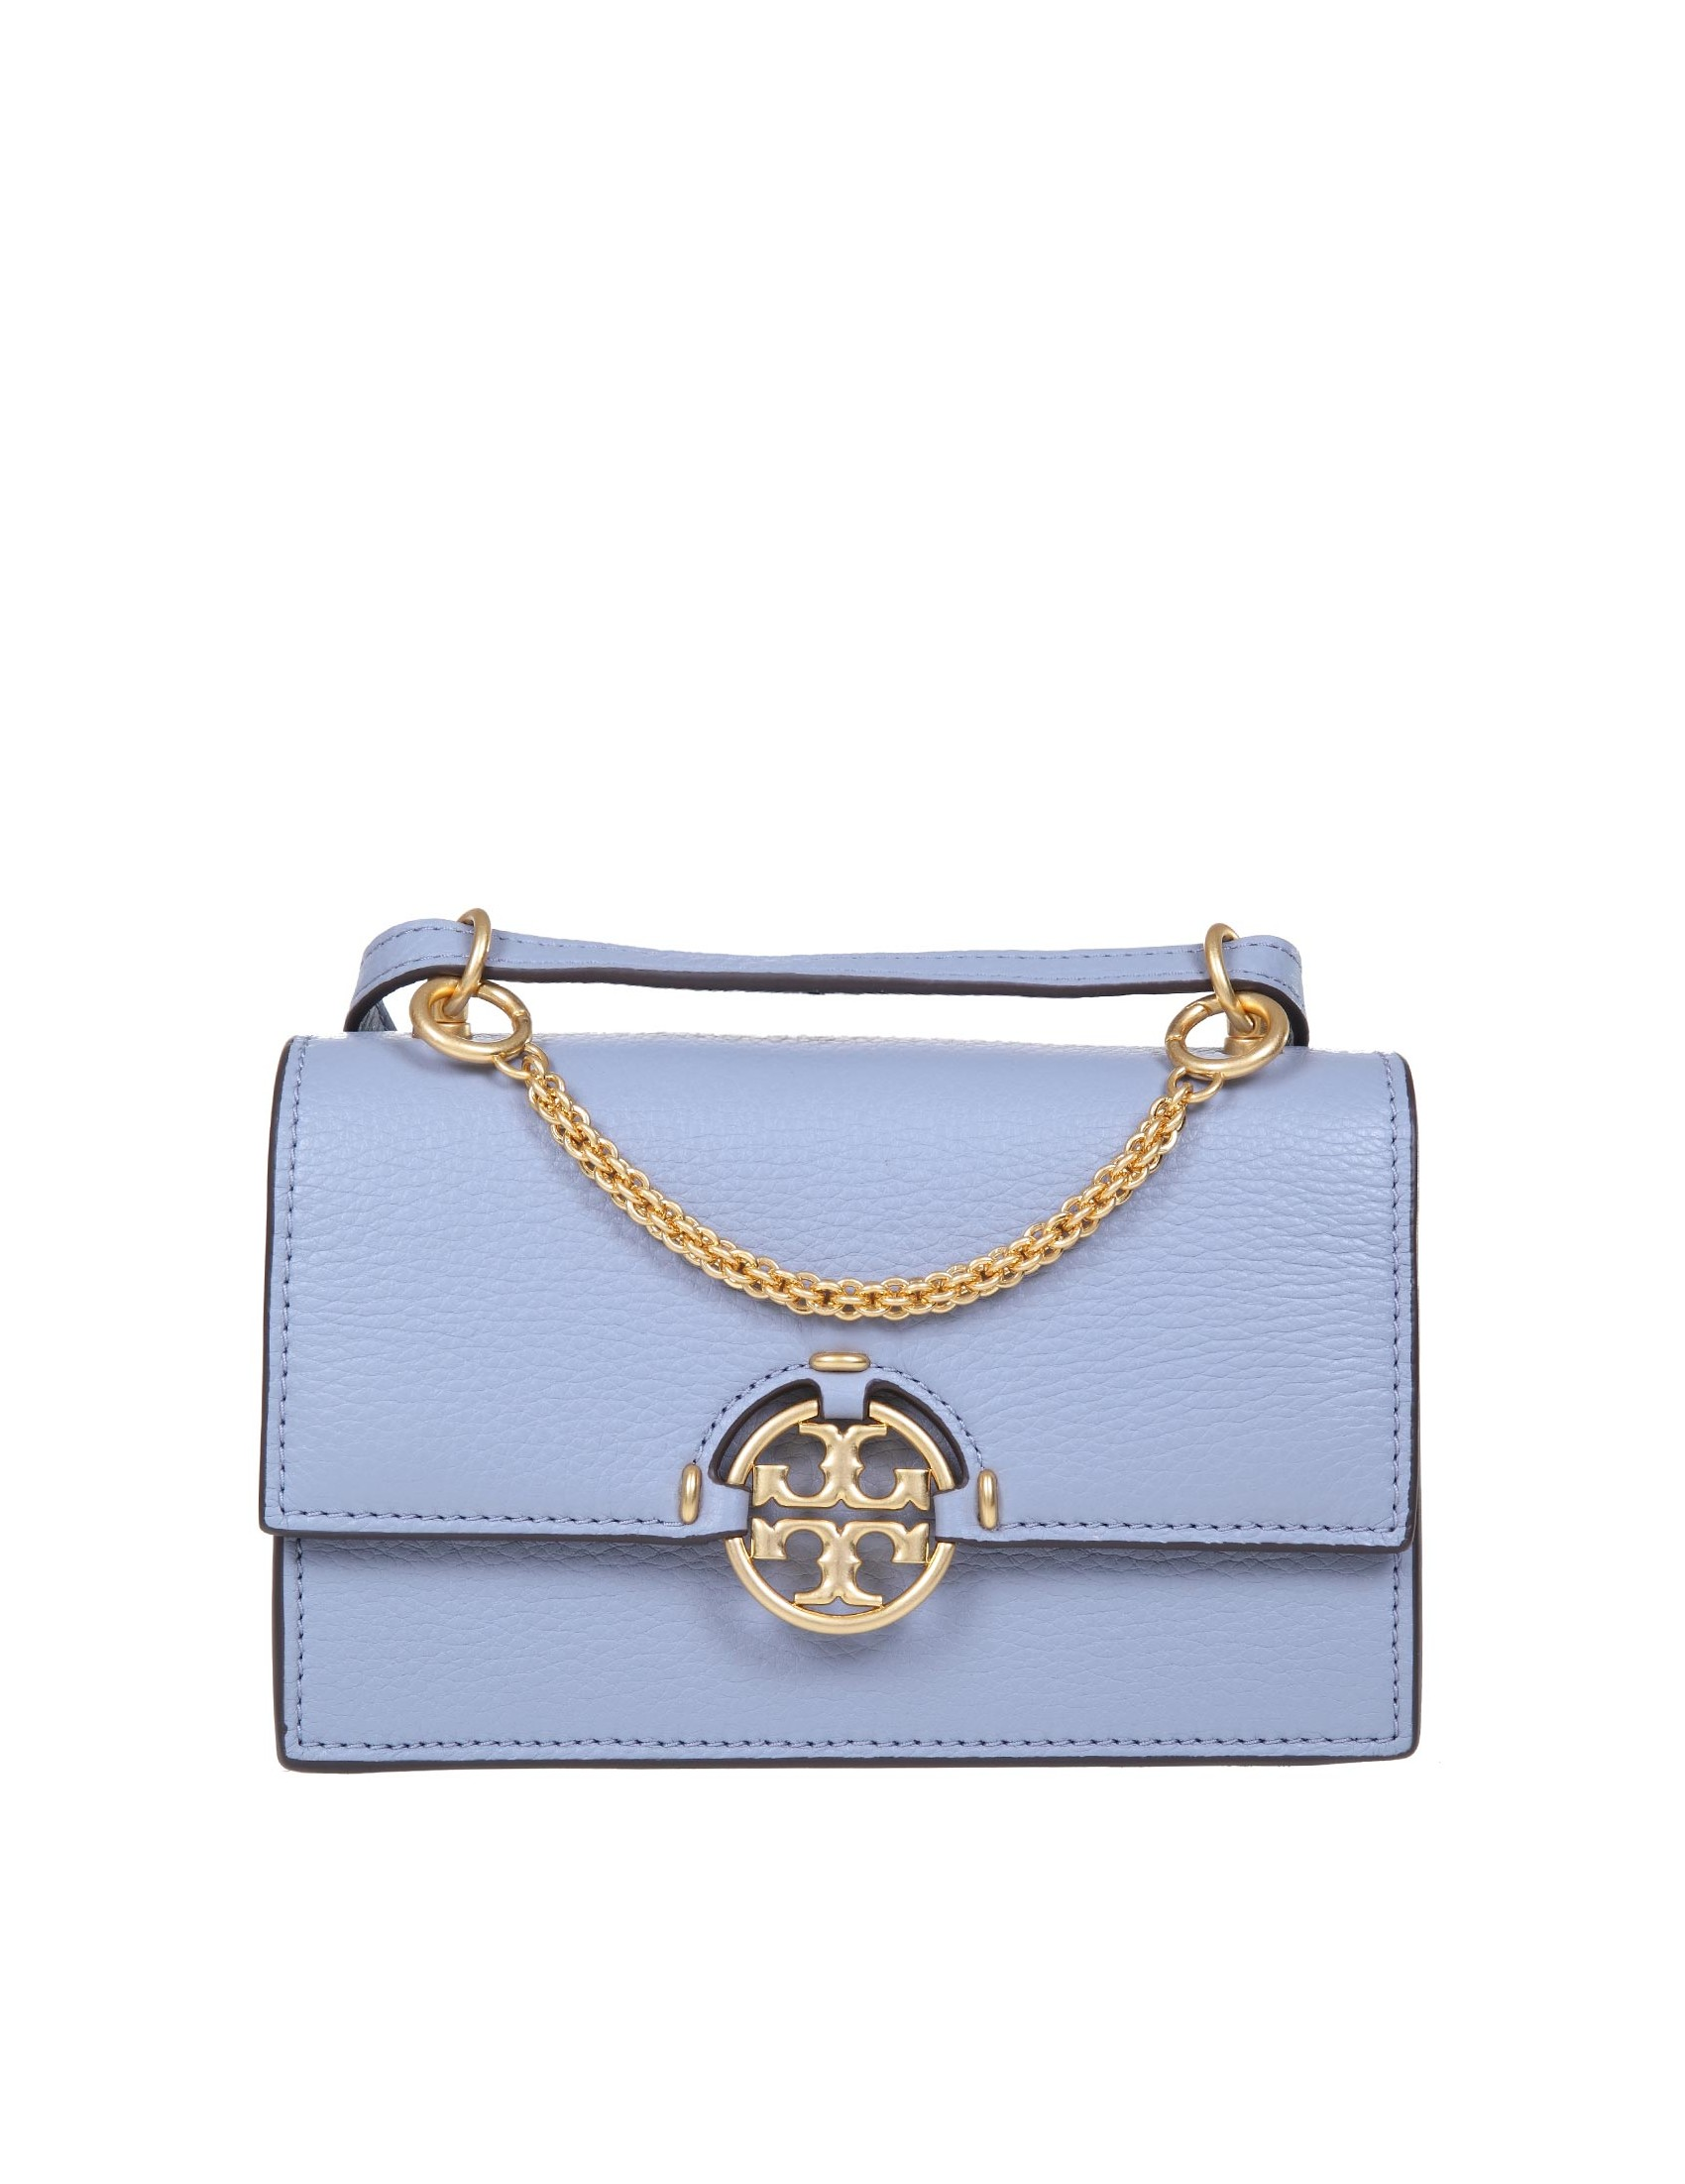 Tory Burch Leathers TORY BURCH BOSA MILLER MINI IN LEATHER